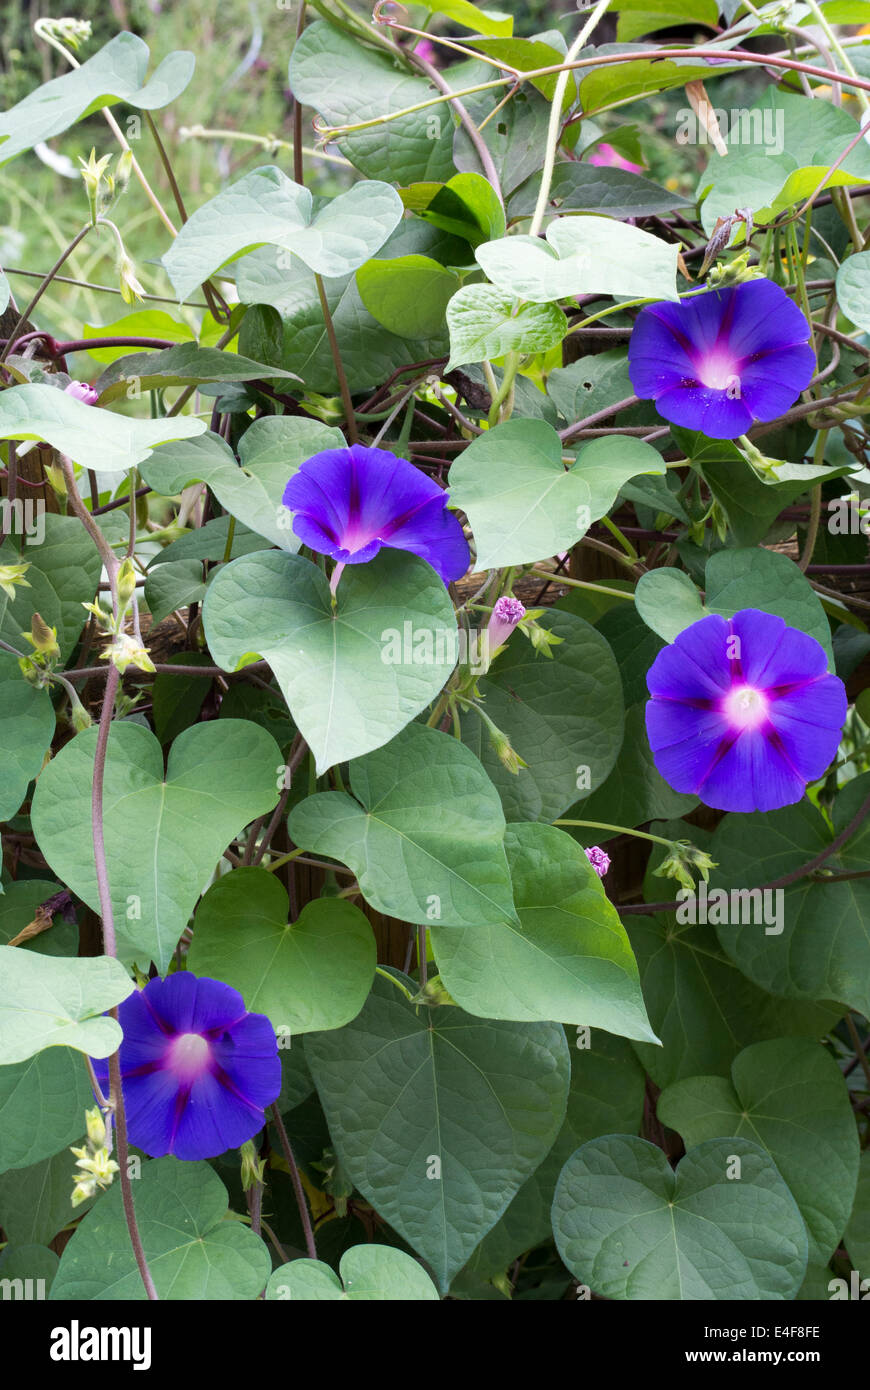 Morning Glory Blooms and Buds adorn a fence in slovenia - Stock Image